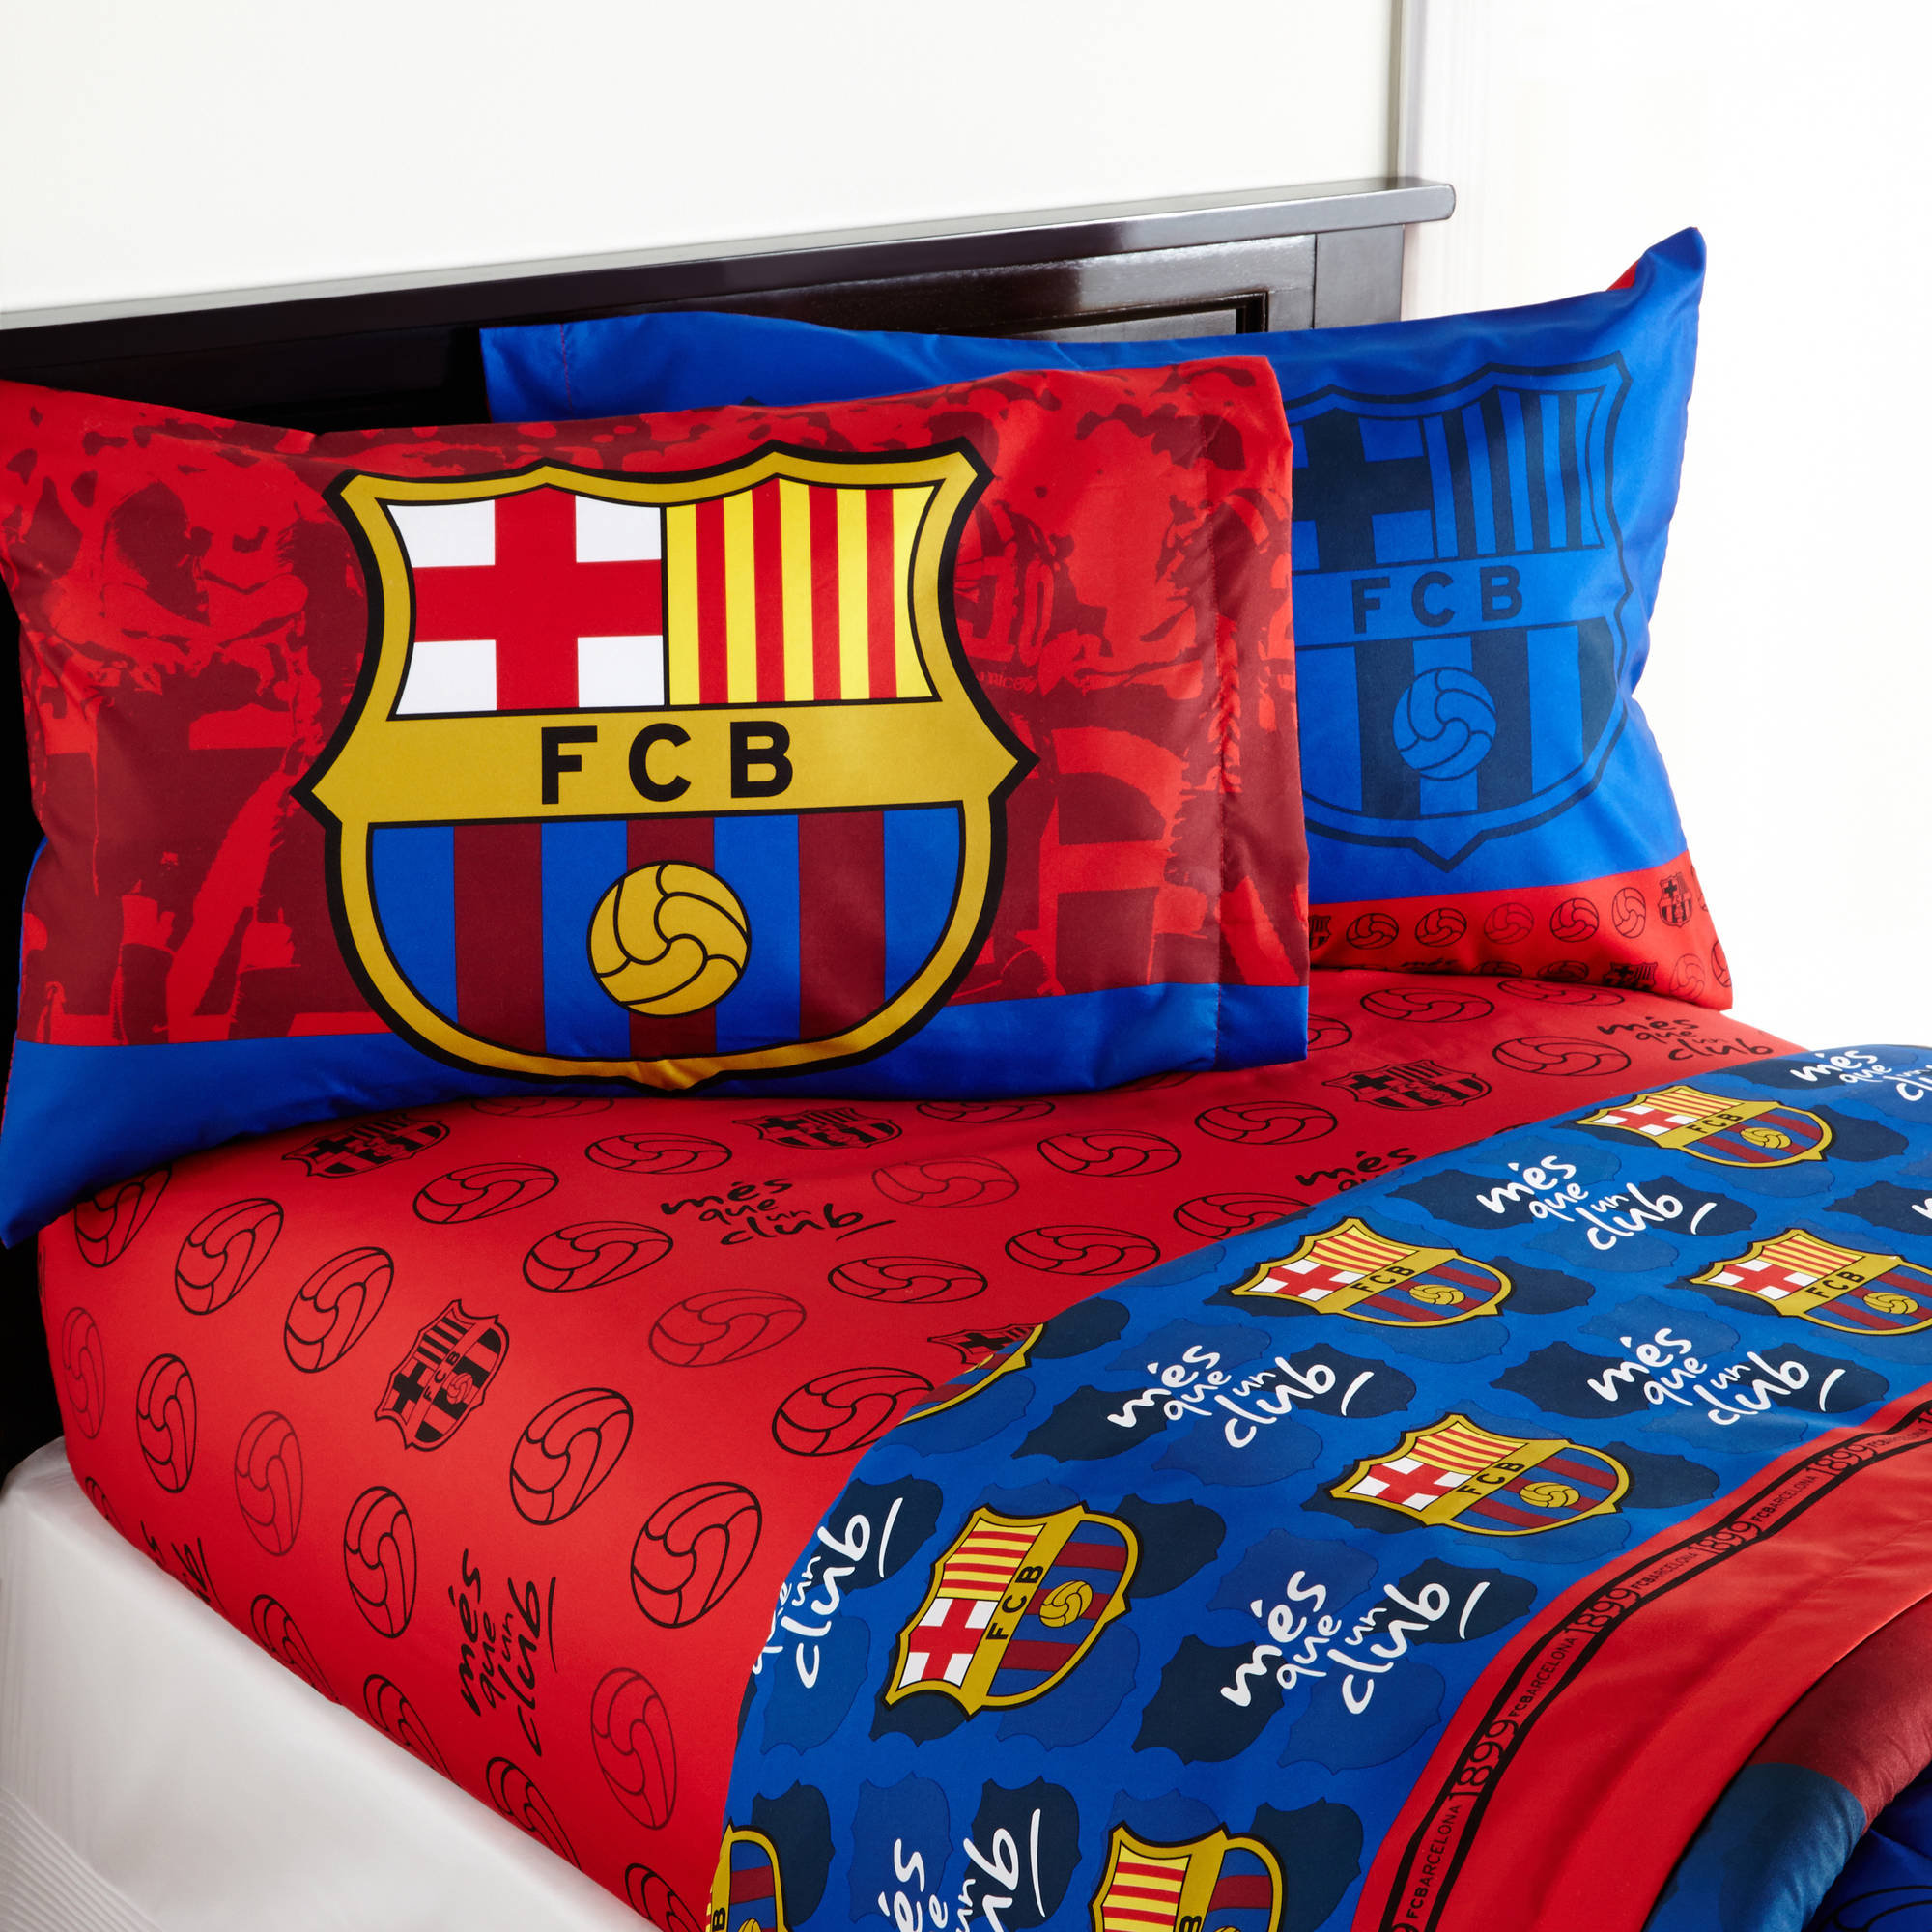 Barcelona 'FCB Soccer' Bedding Sheet Set